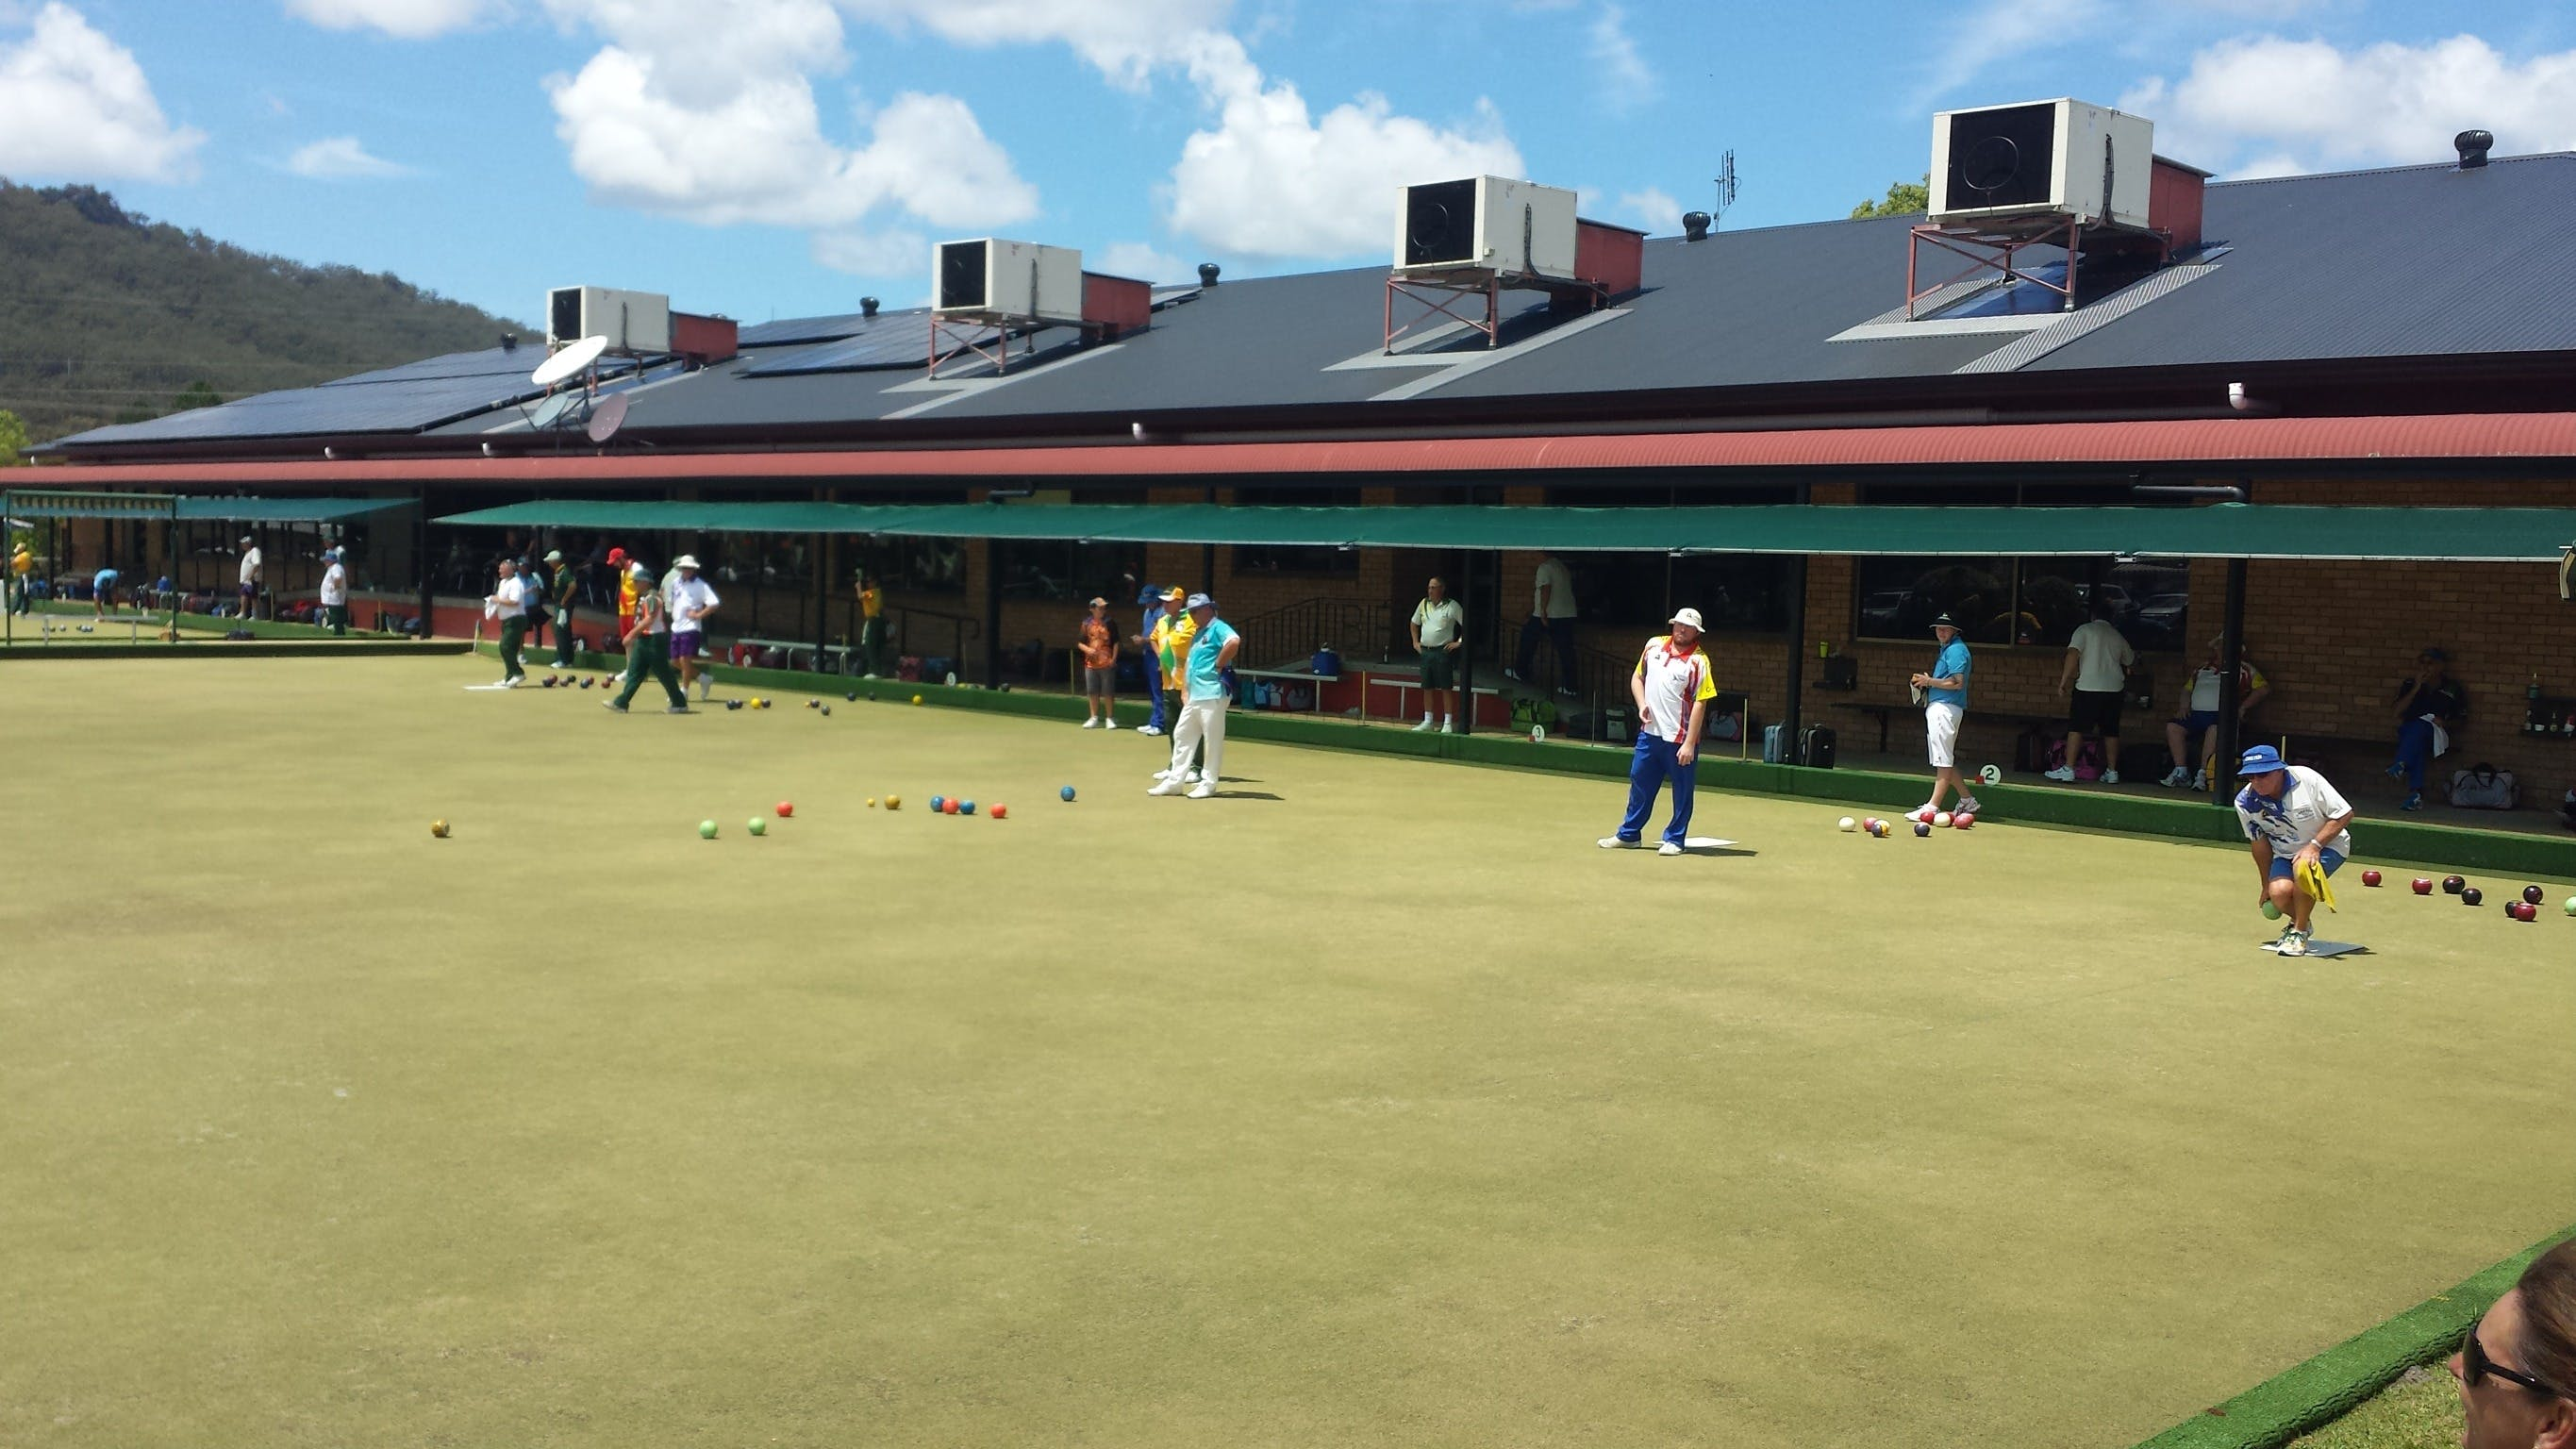 Bulahdelah Bowling Club - Accommodation Search